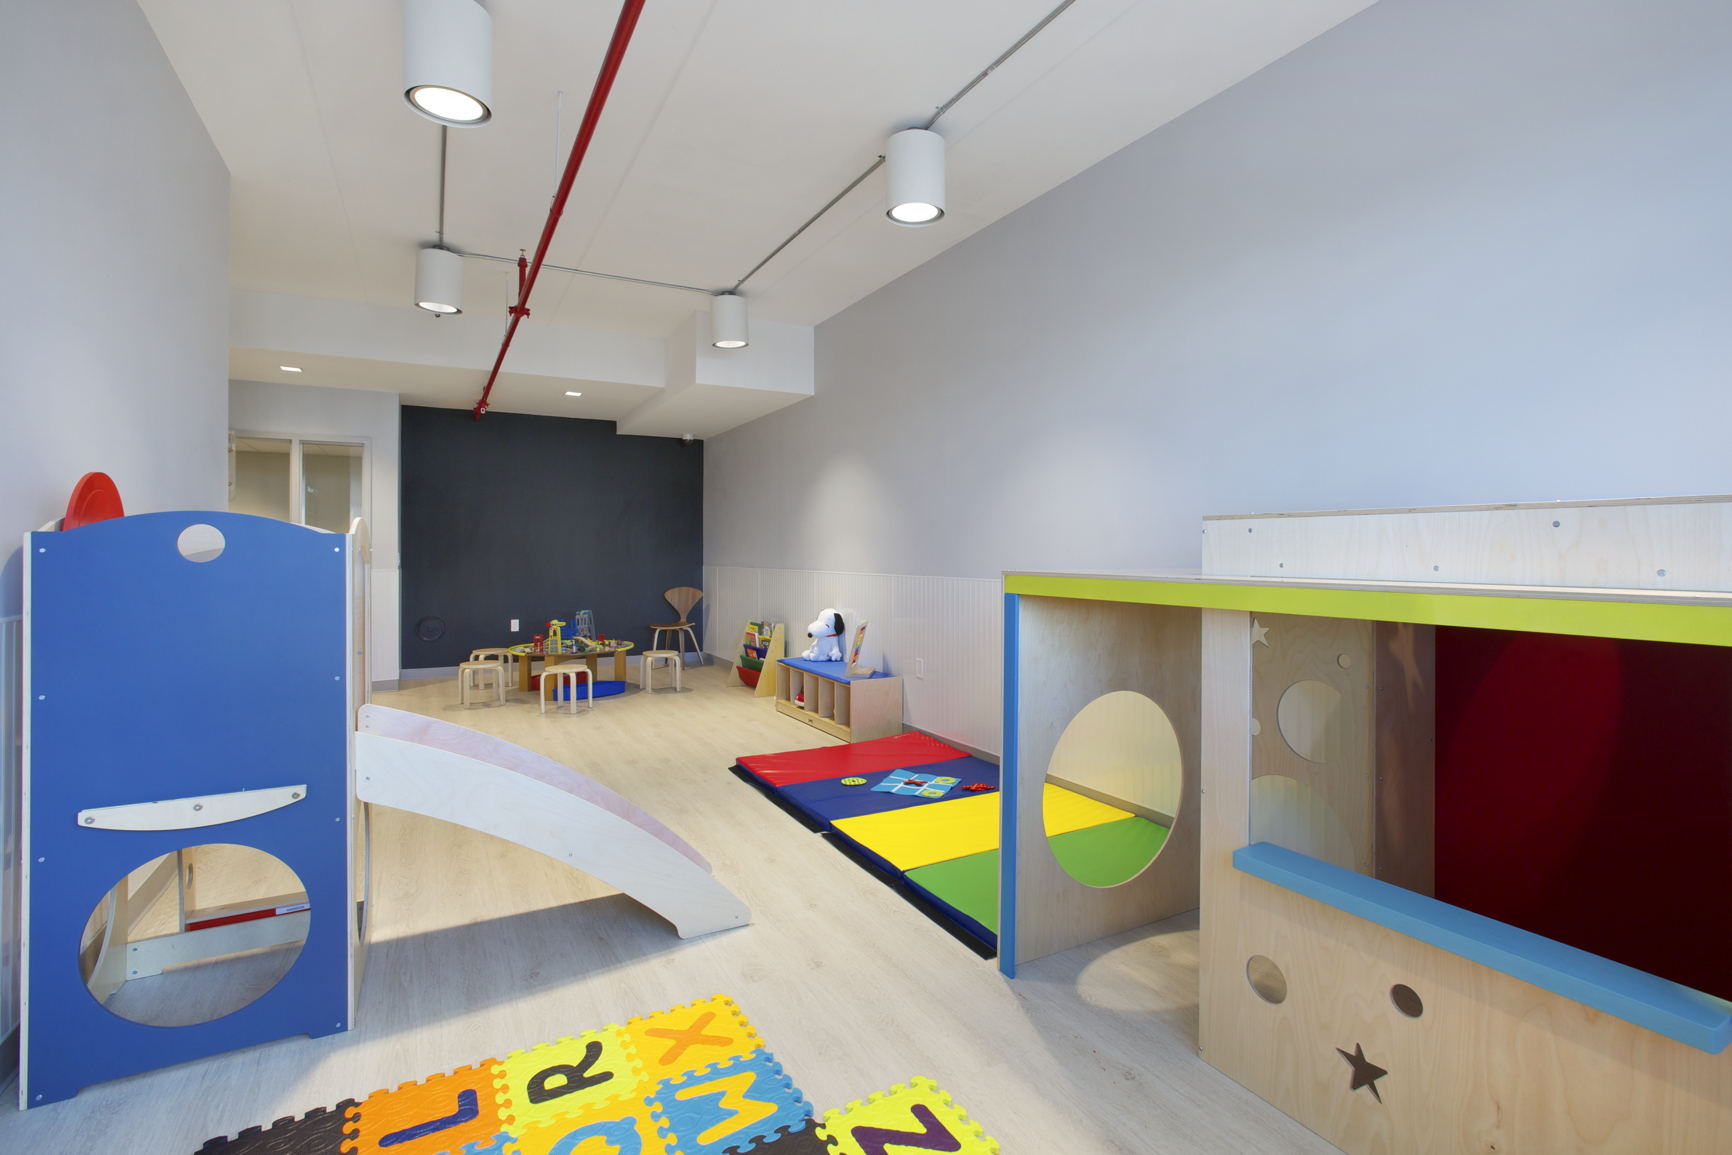 Children's Playroom - Photo courtesy of client